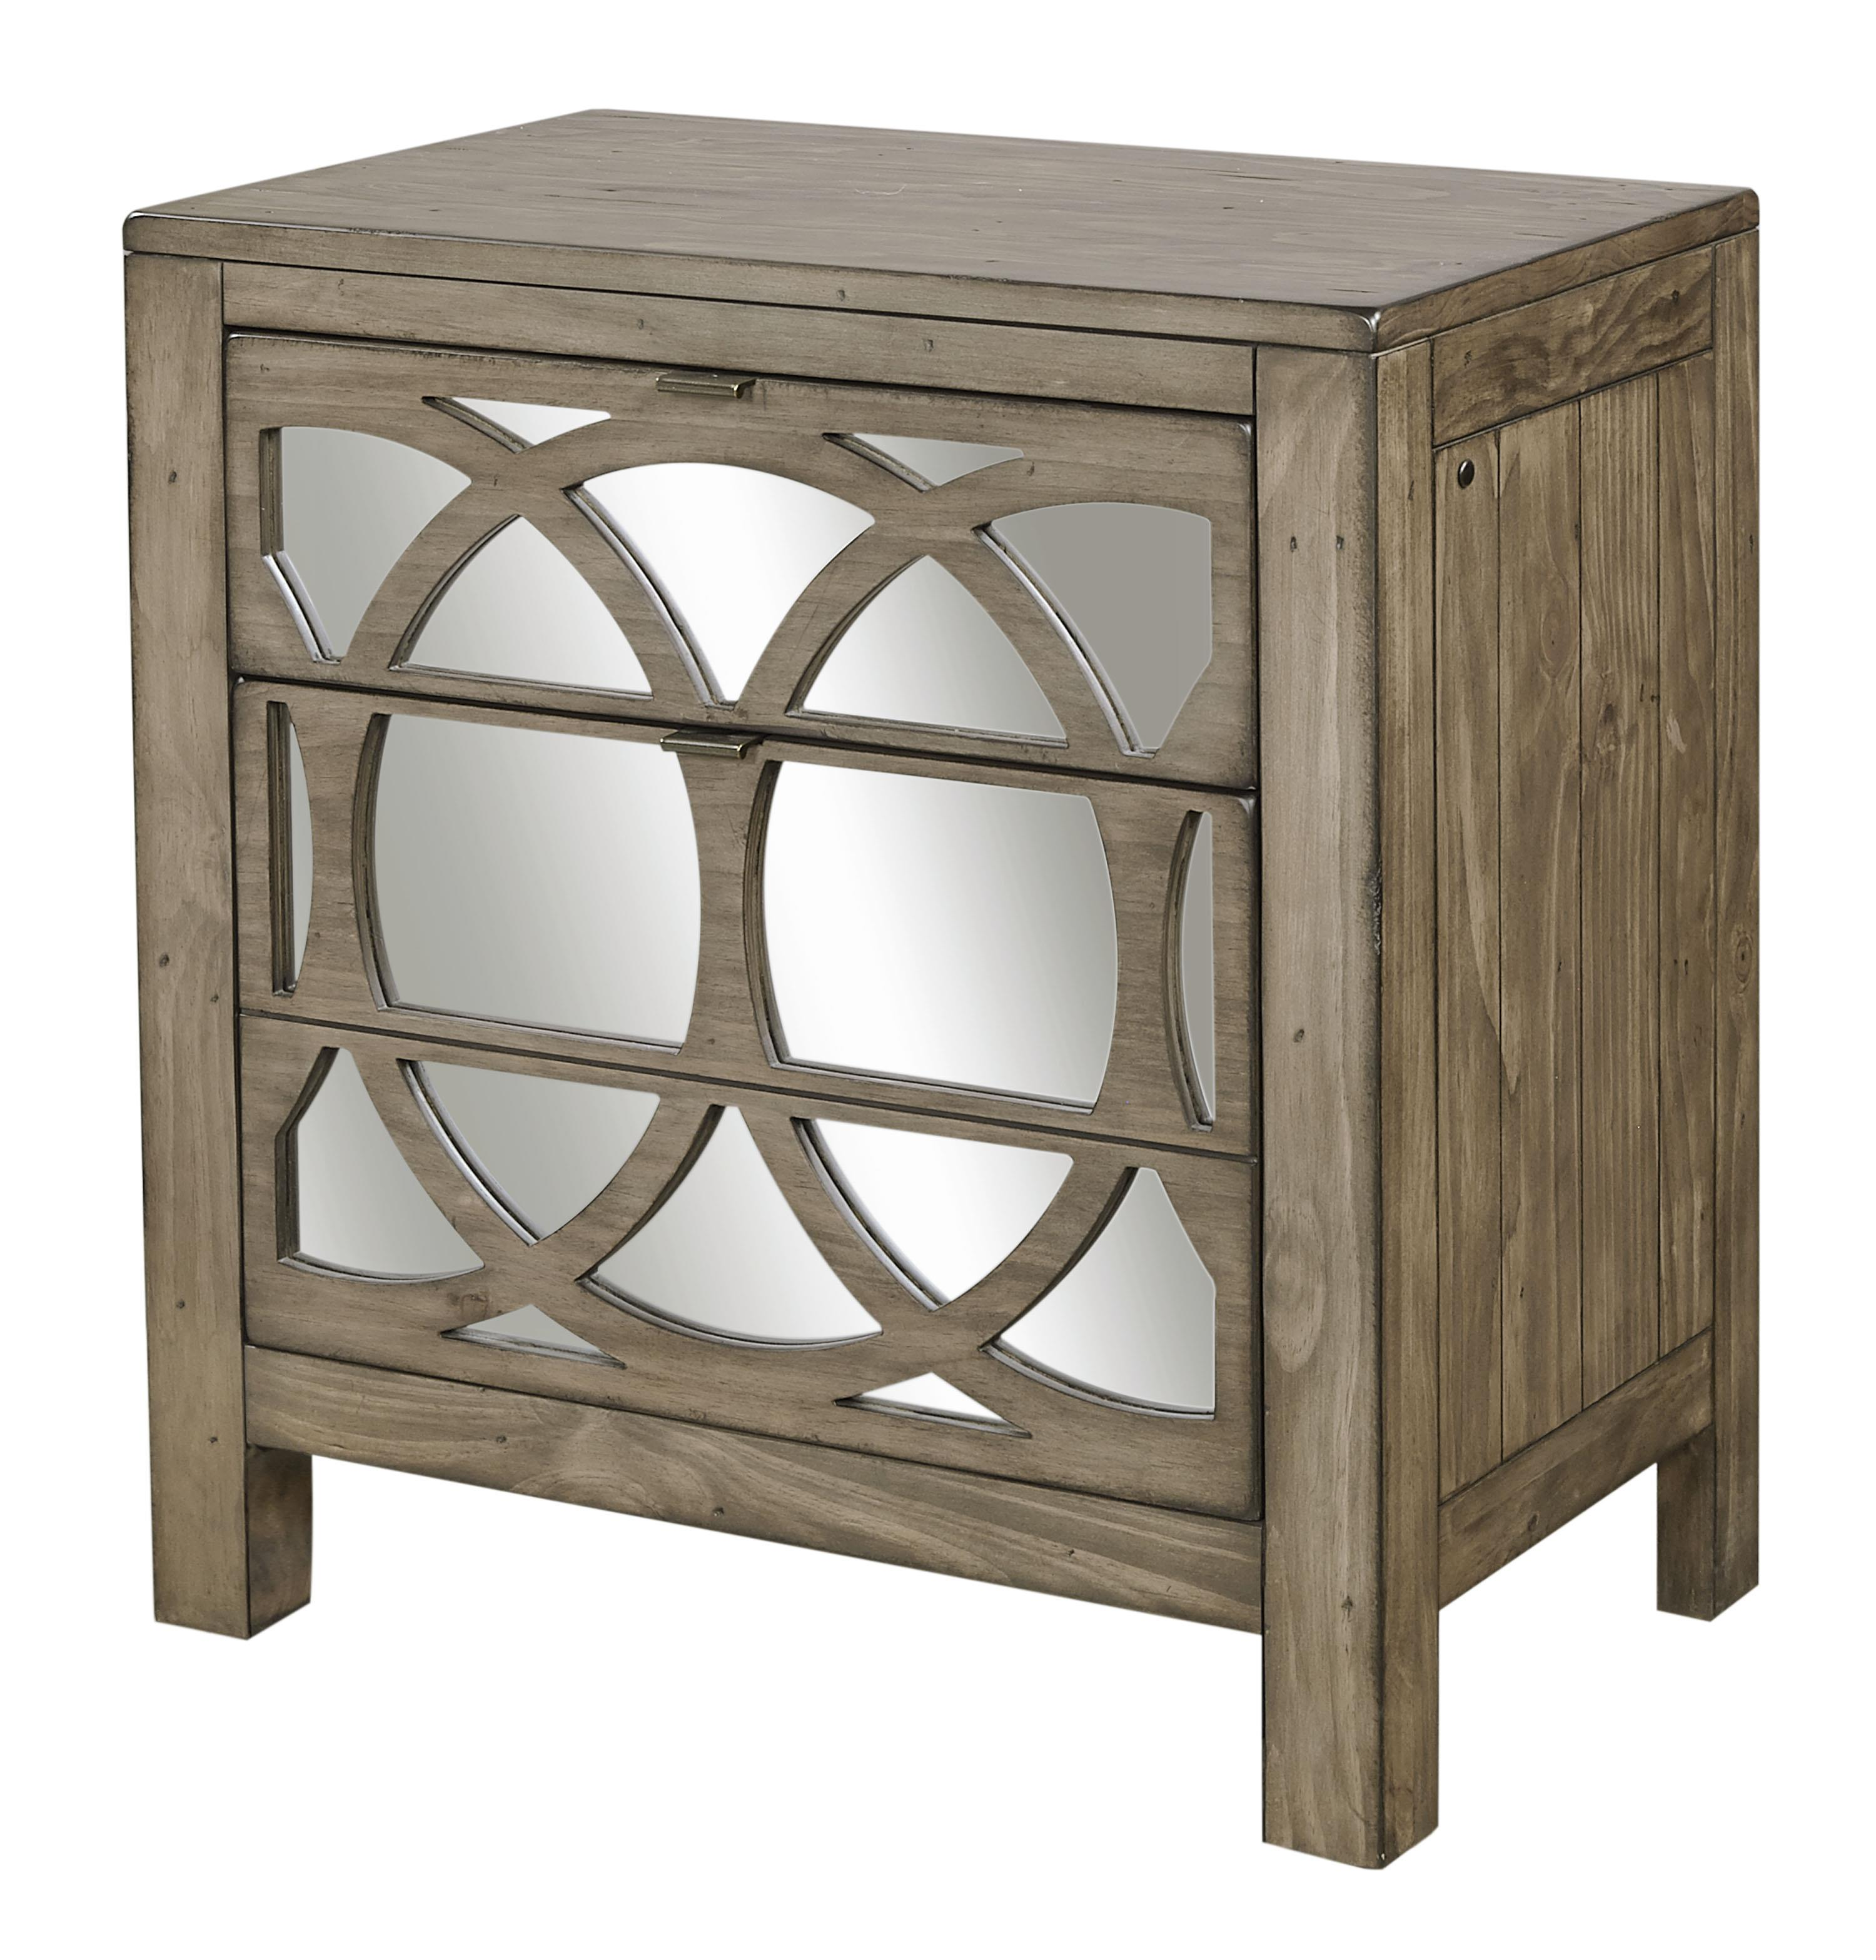 Tildon Liv360 Mirrored Nightstand by Aspenhome at Walker's Furniture